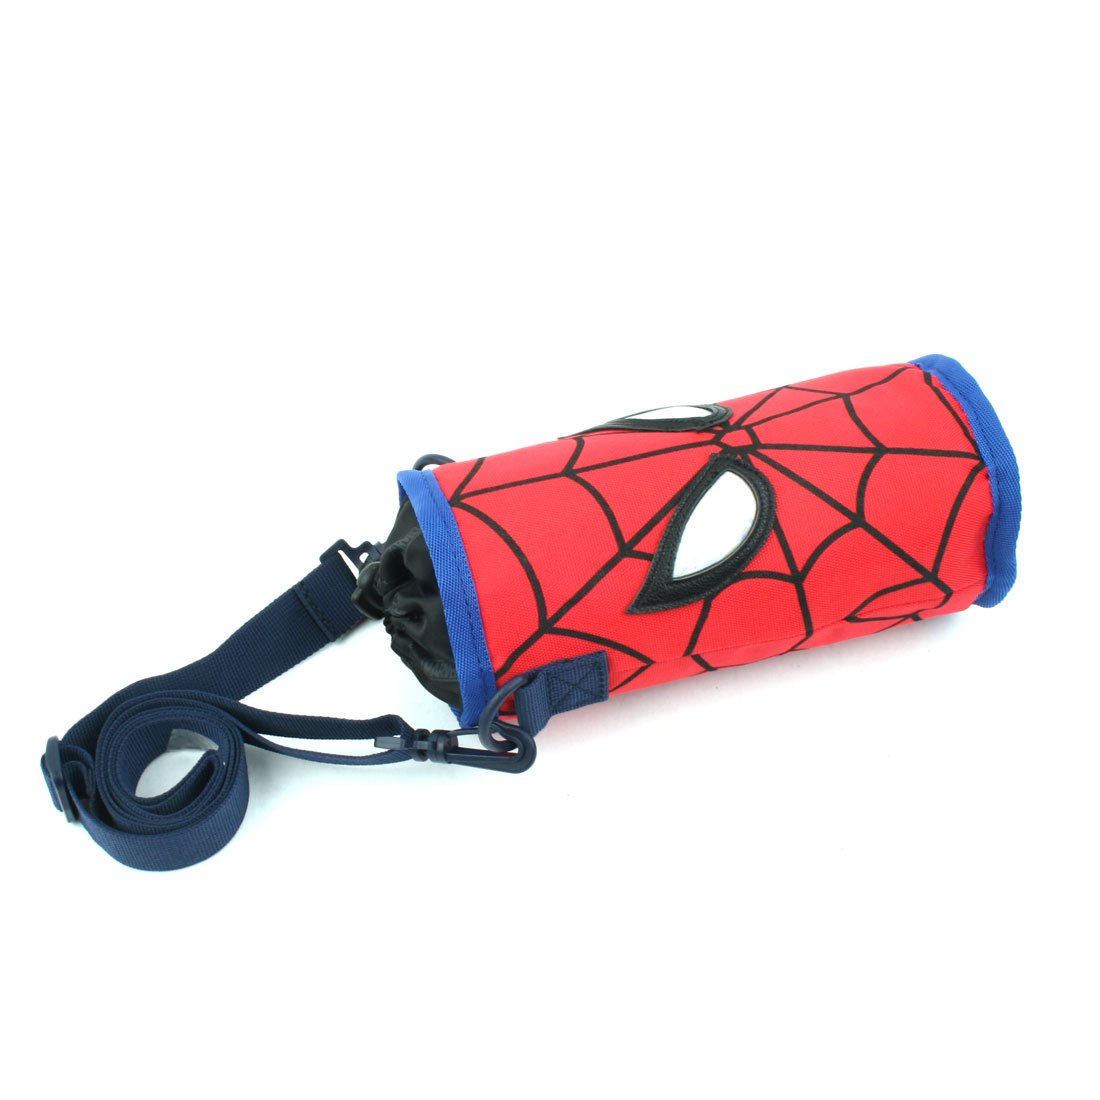 WINGHOUSE x Marvel Spider-Man Water Bottle Sleeve Bottle holder Cross body Bag with Shoulder Strap for Pre-Teen by WINGHOUSE (Image #4)